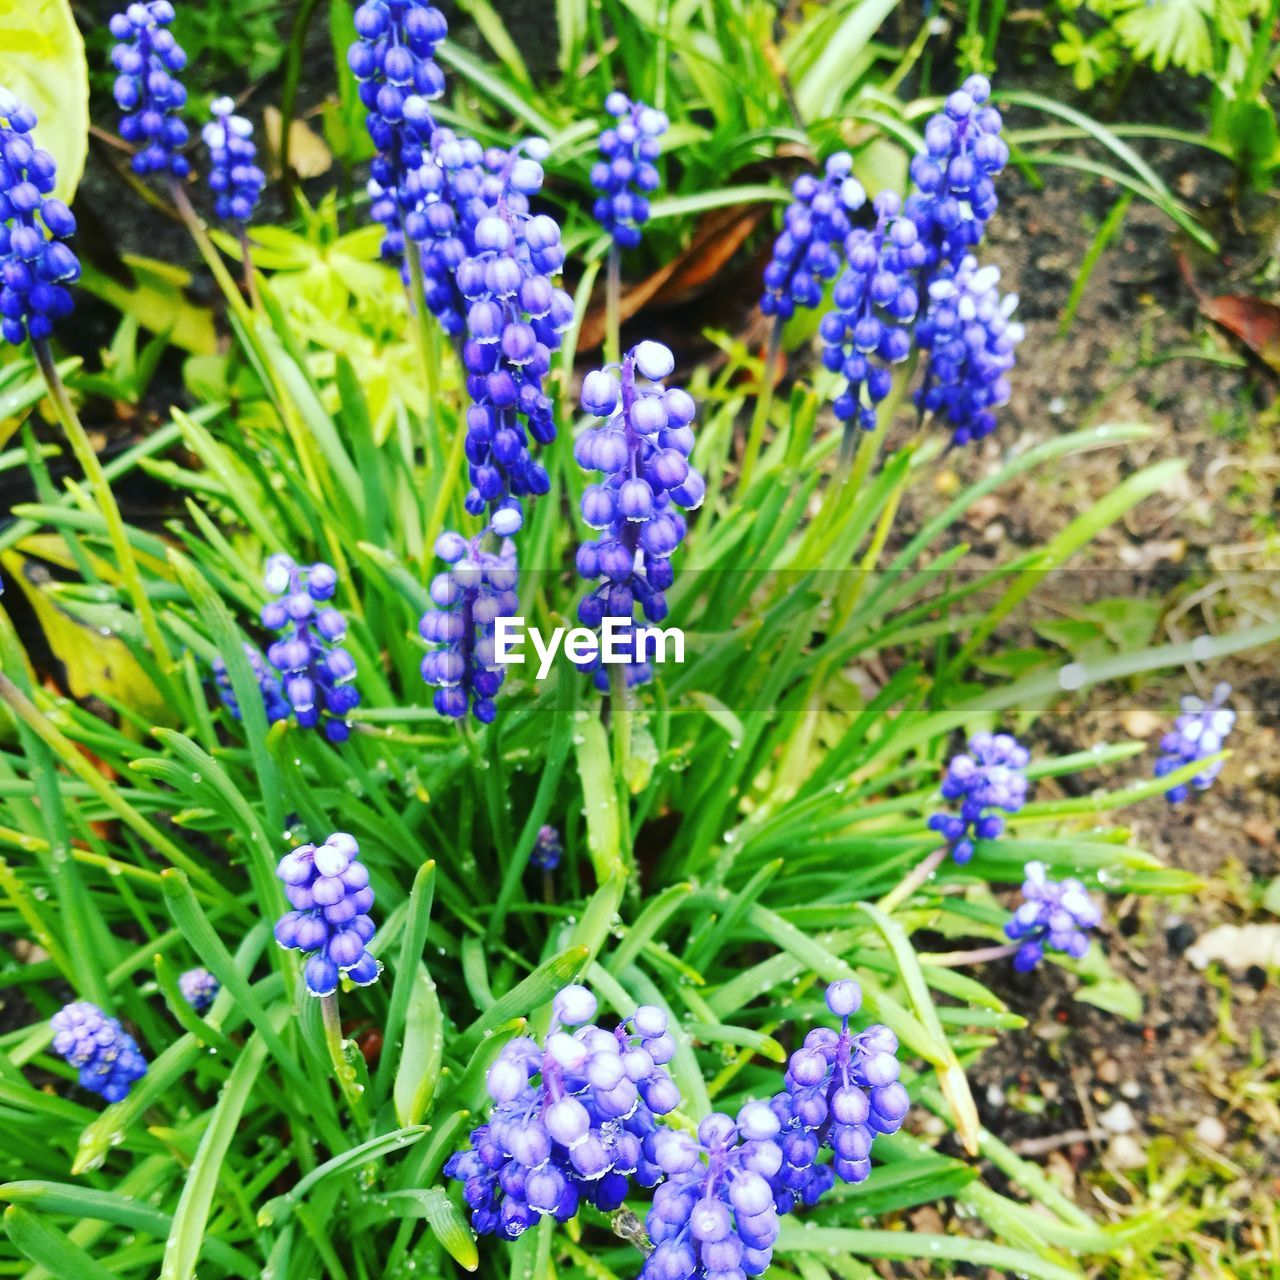 flower, purple, beauty in nature, nature, growth, plant, fragility, green color, botany, freshness, day, outdoors, field, no people, petal, sunlight, blue, flower head, hyacinth, close-up, blooming